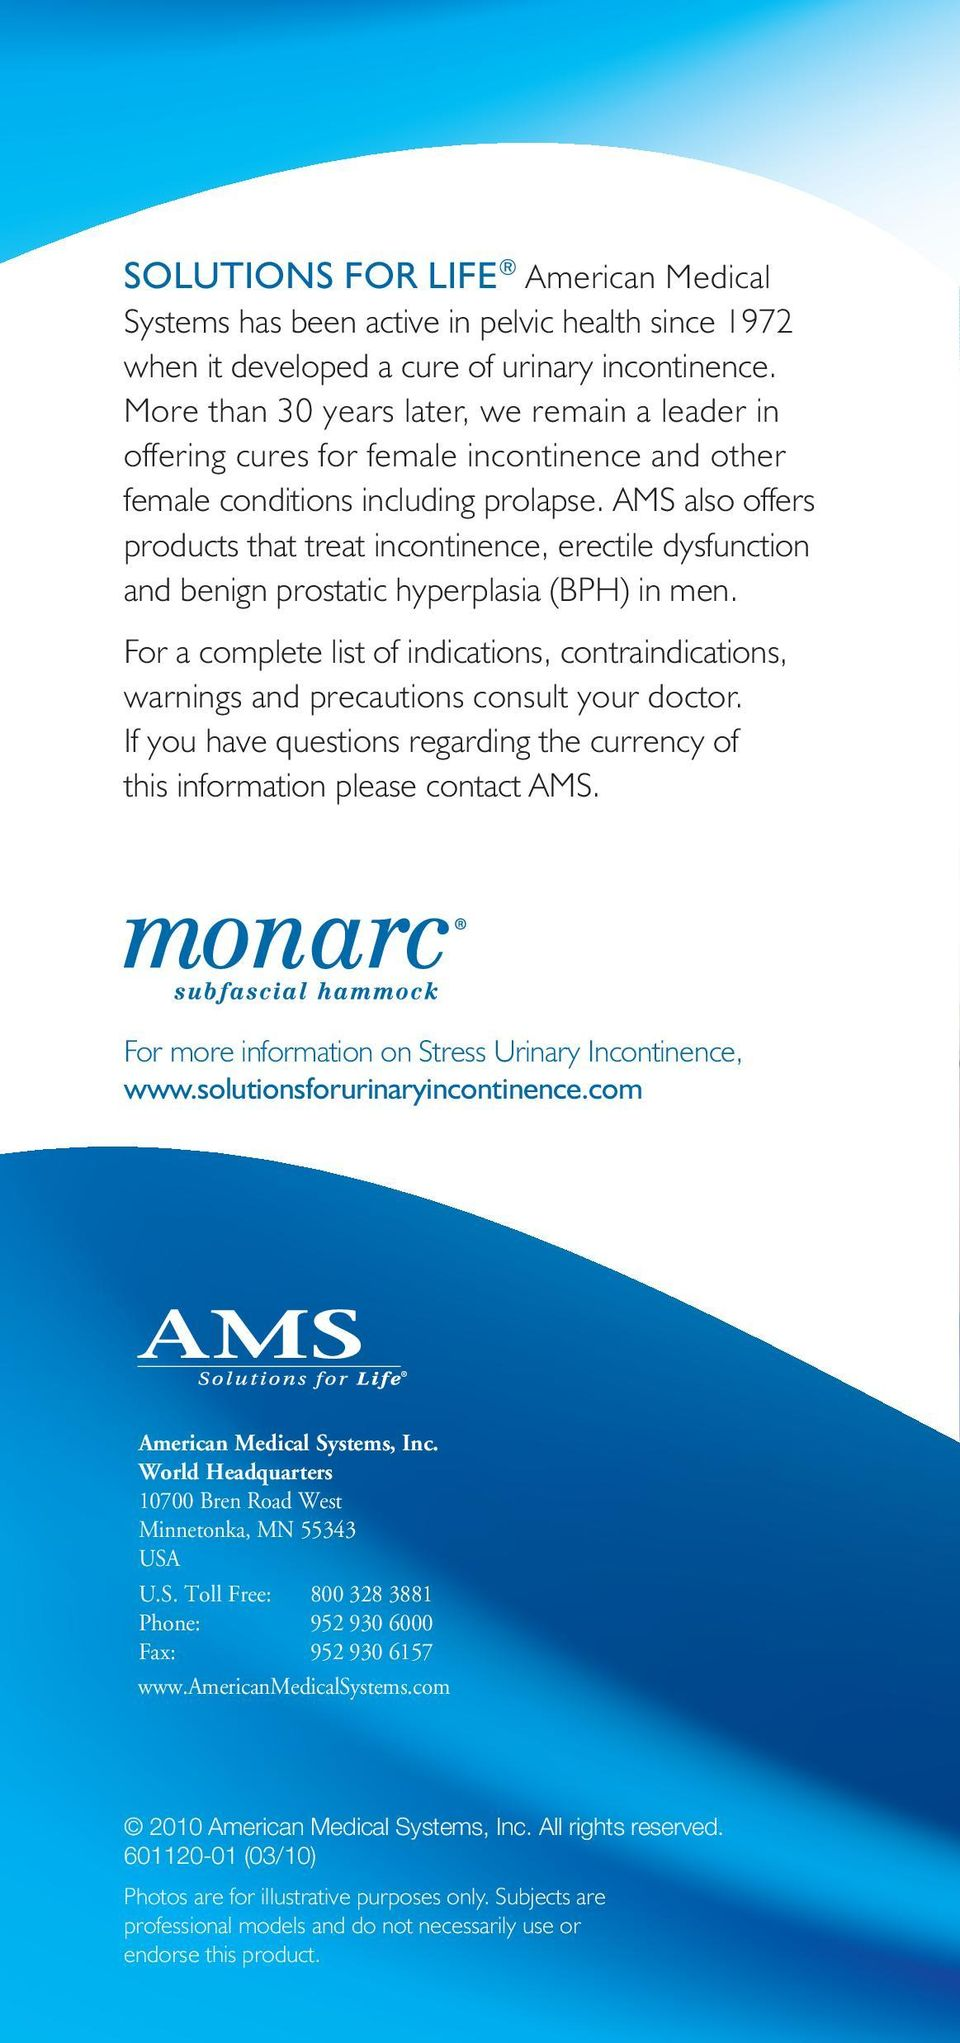 AMS also offers products that treat incontinence, erectile dysfunction and benign prostatic hyperplasia (BPH) in men.